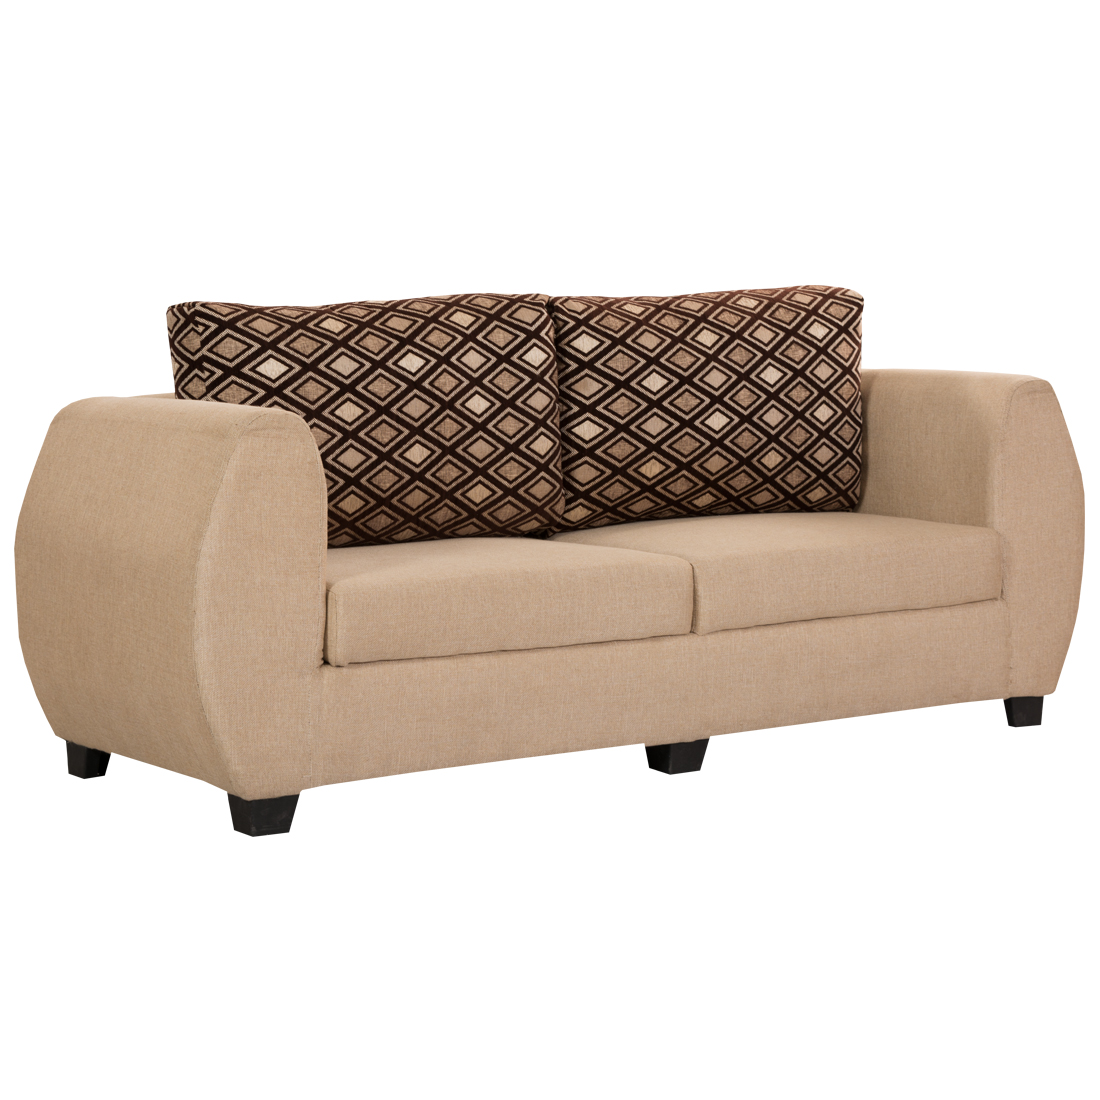 Bharat Lifestyle Delight Fabric 3 Seater Sofa (Color-Gold)